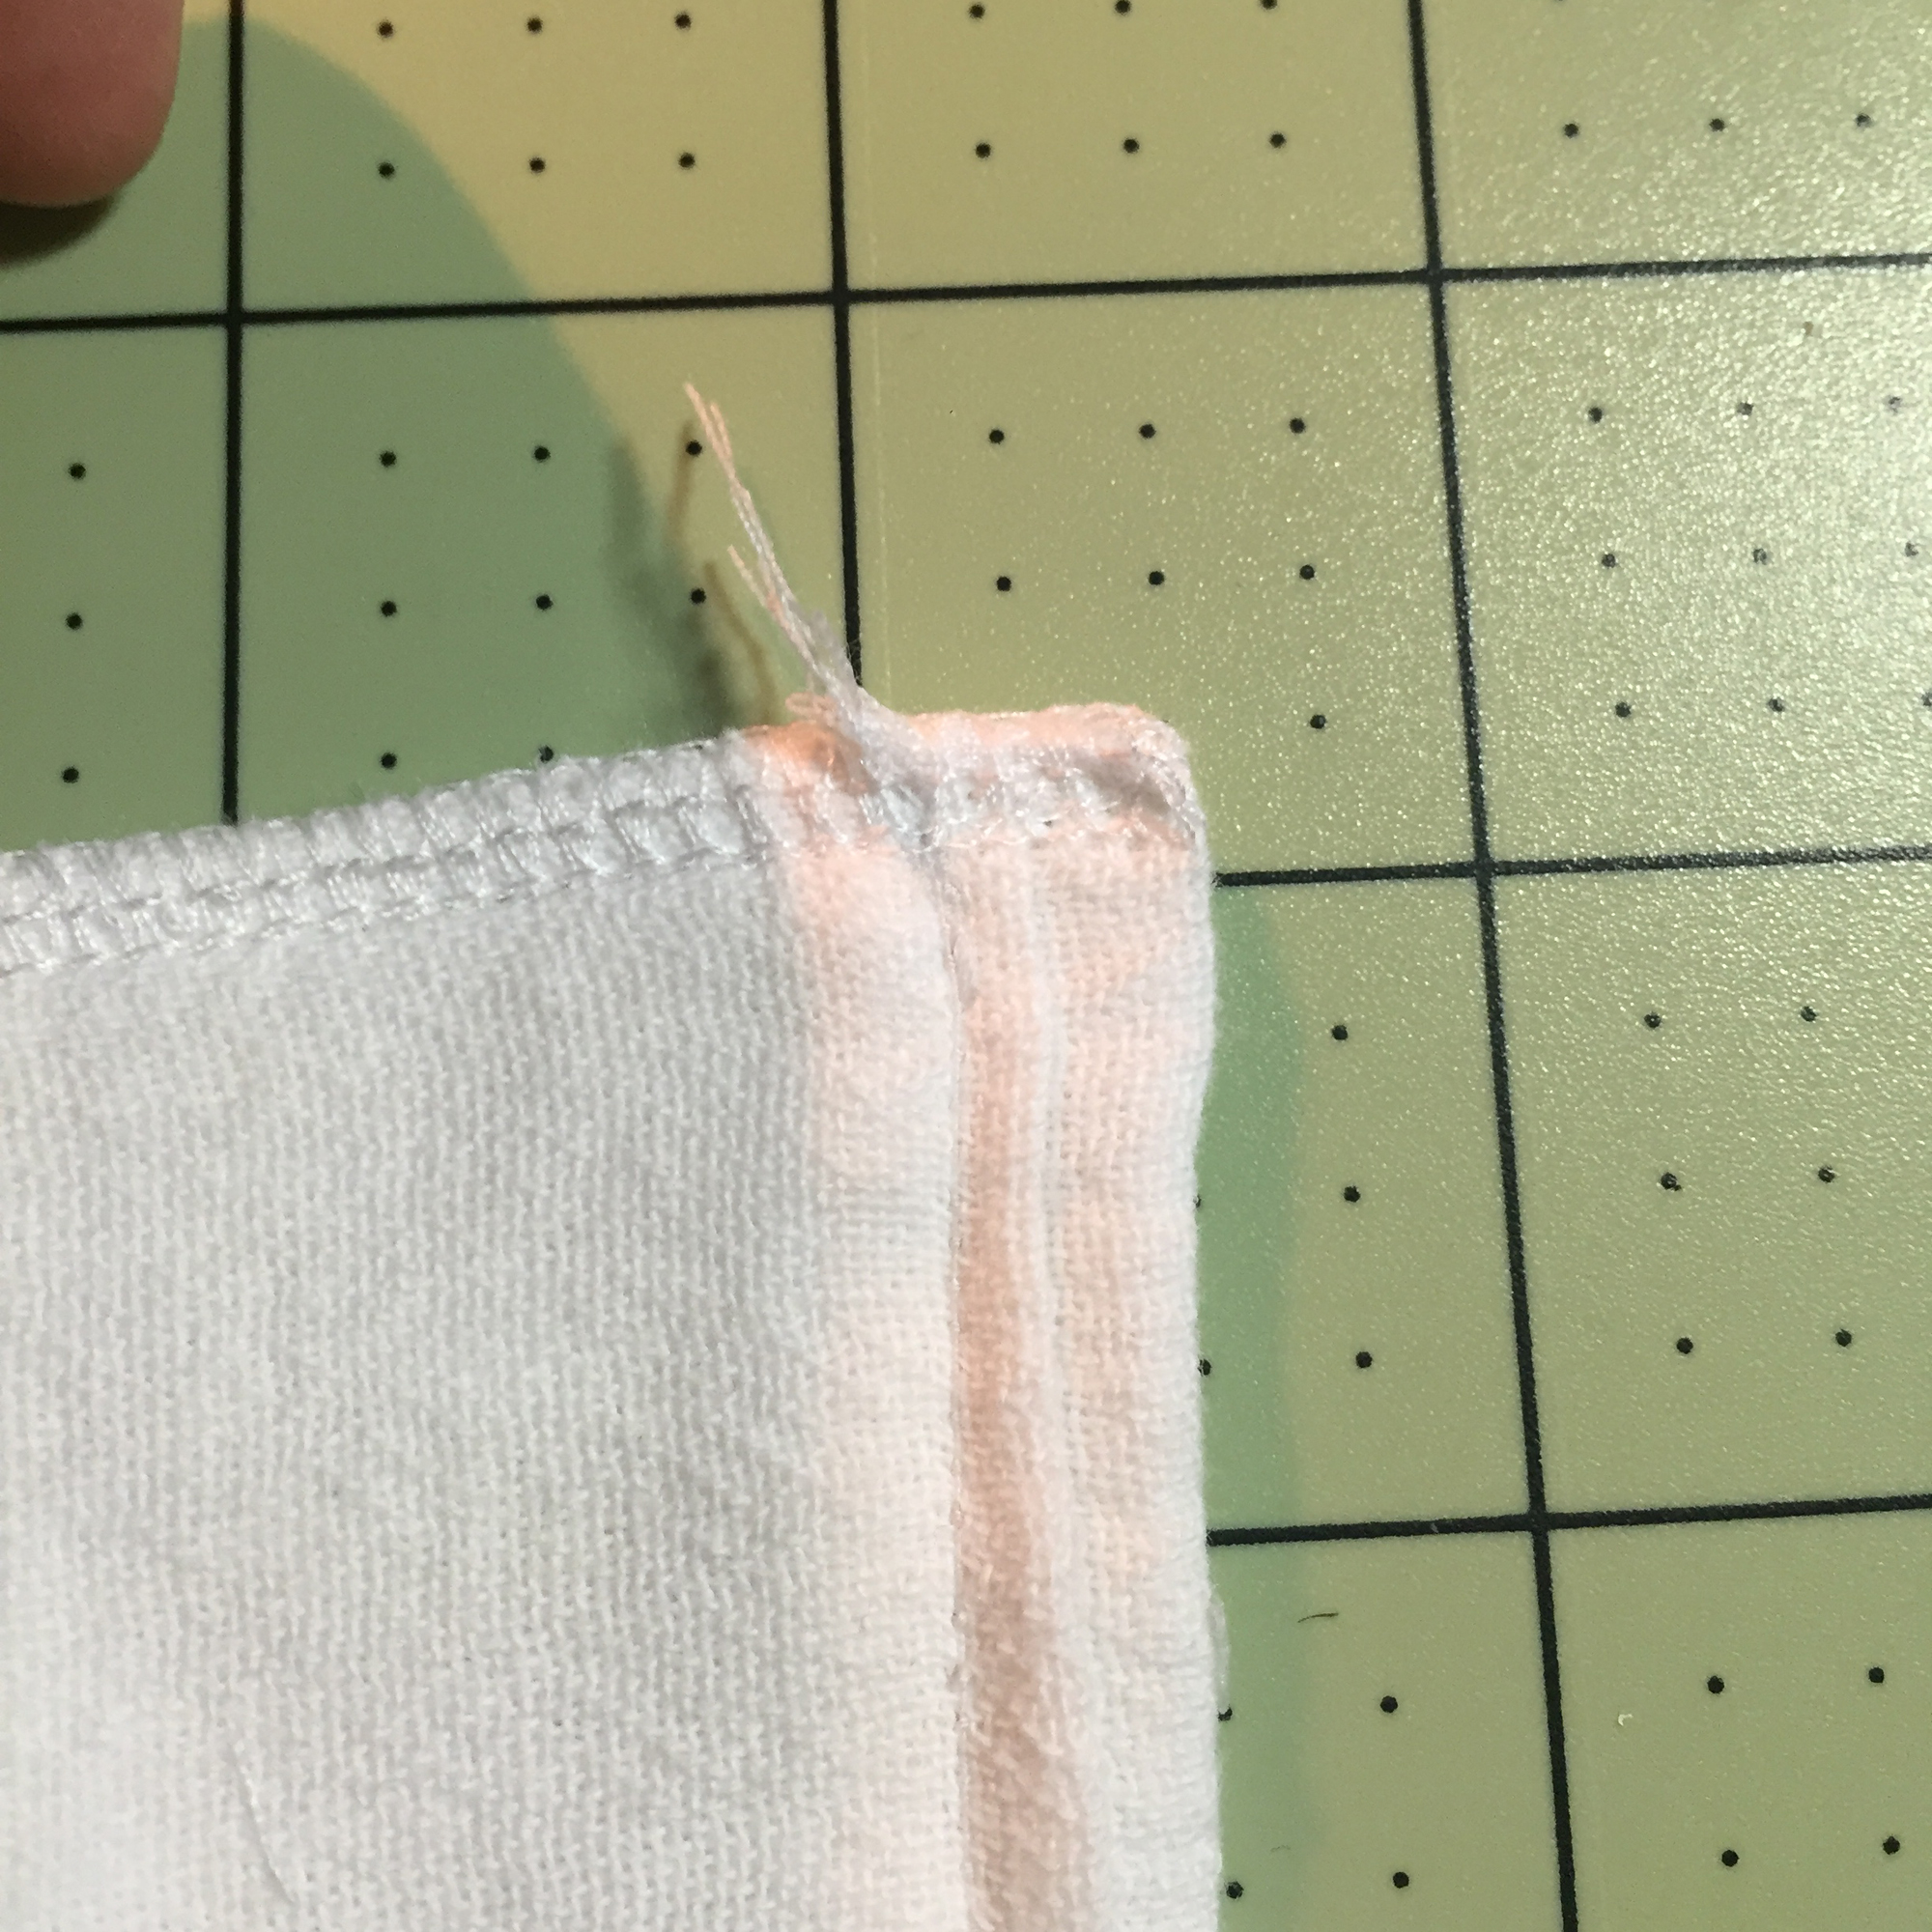 Once you pull through, the tail will be caught and safe in the serged stitches. Cut the extra tail.